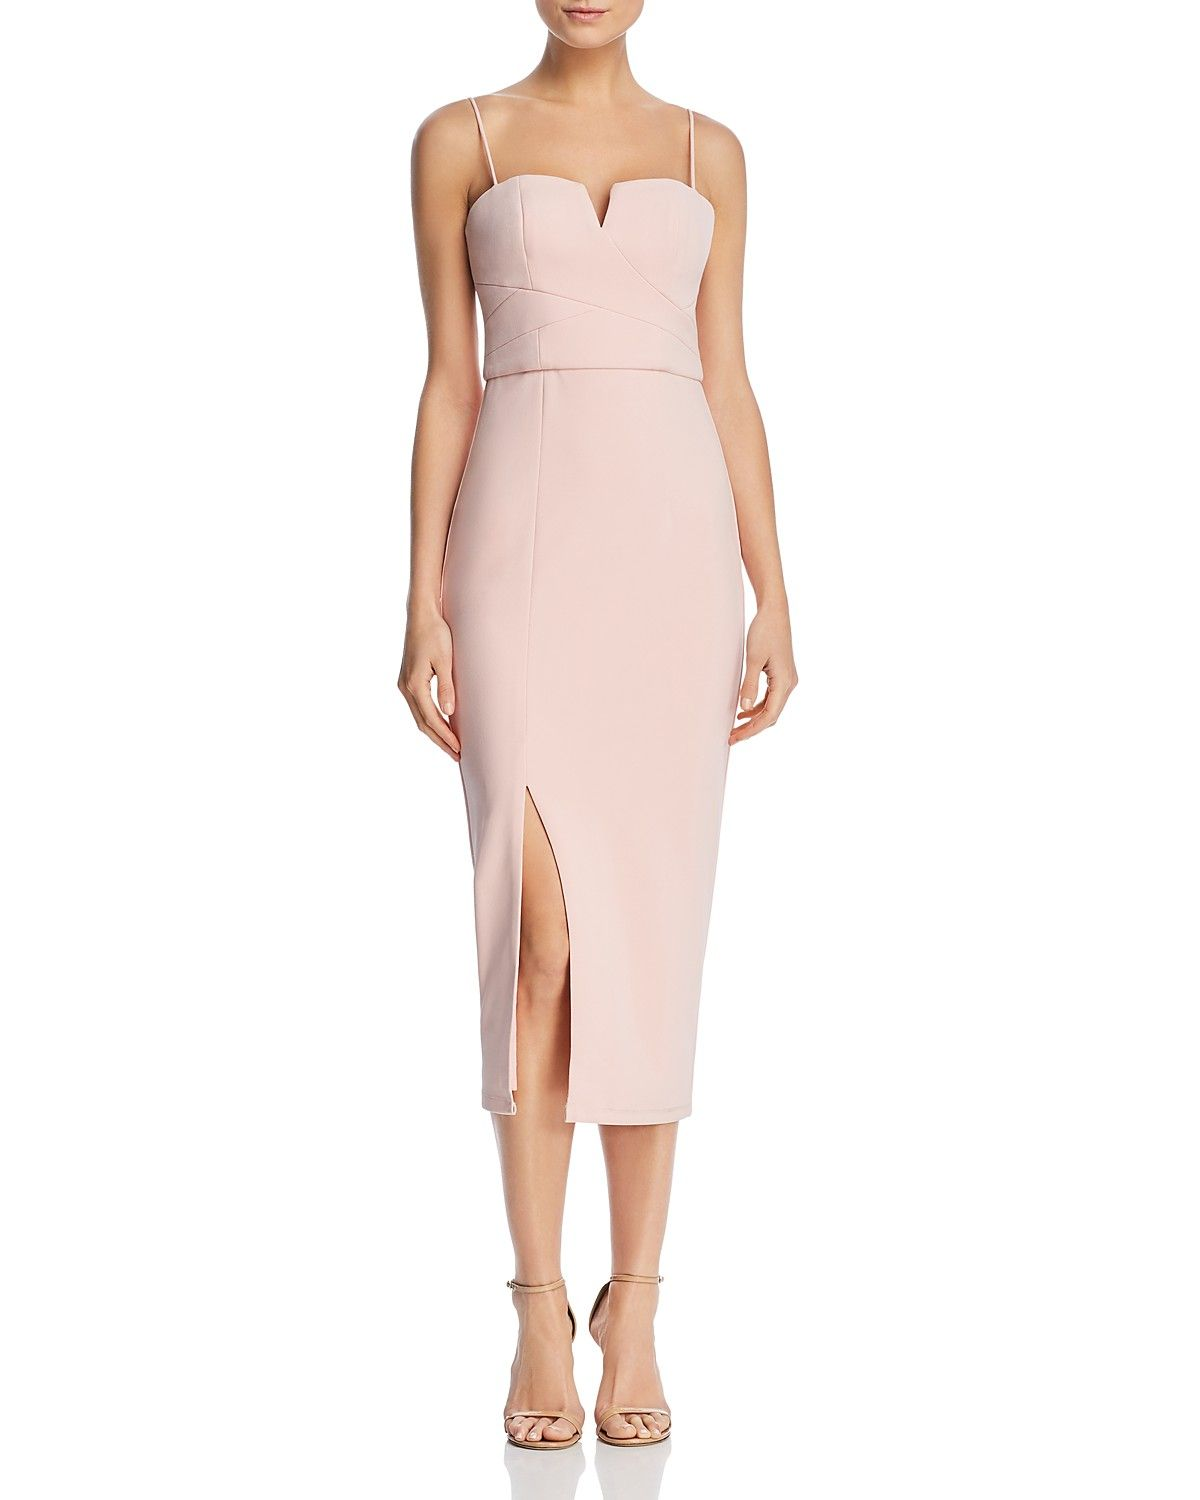 Bariano Sweetheart Midi Dress 100 Exclusive Women Dresses Cocktail Party Bloomingdale S Midi Dress Dresses Dress 100 [ 1500 x 1200 Pixel ]